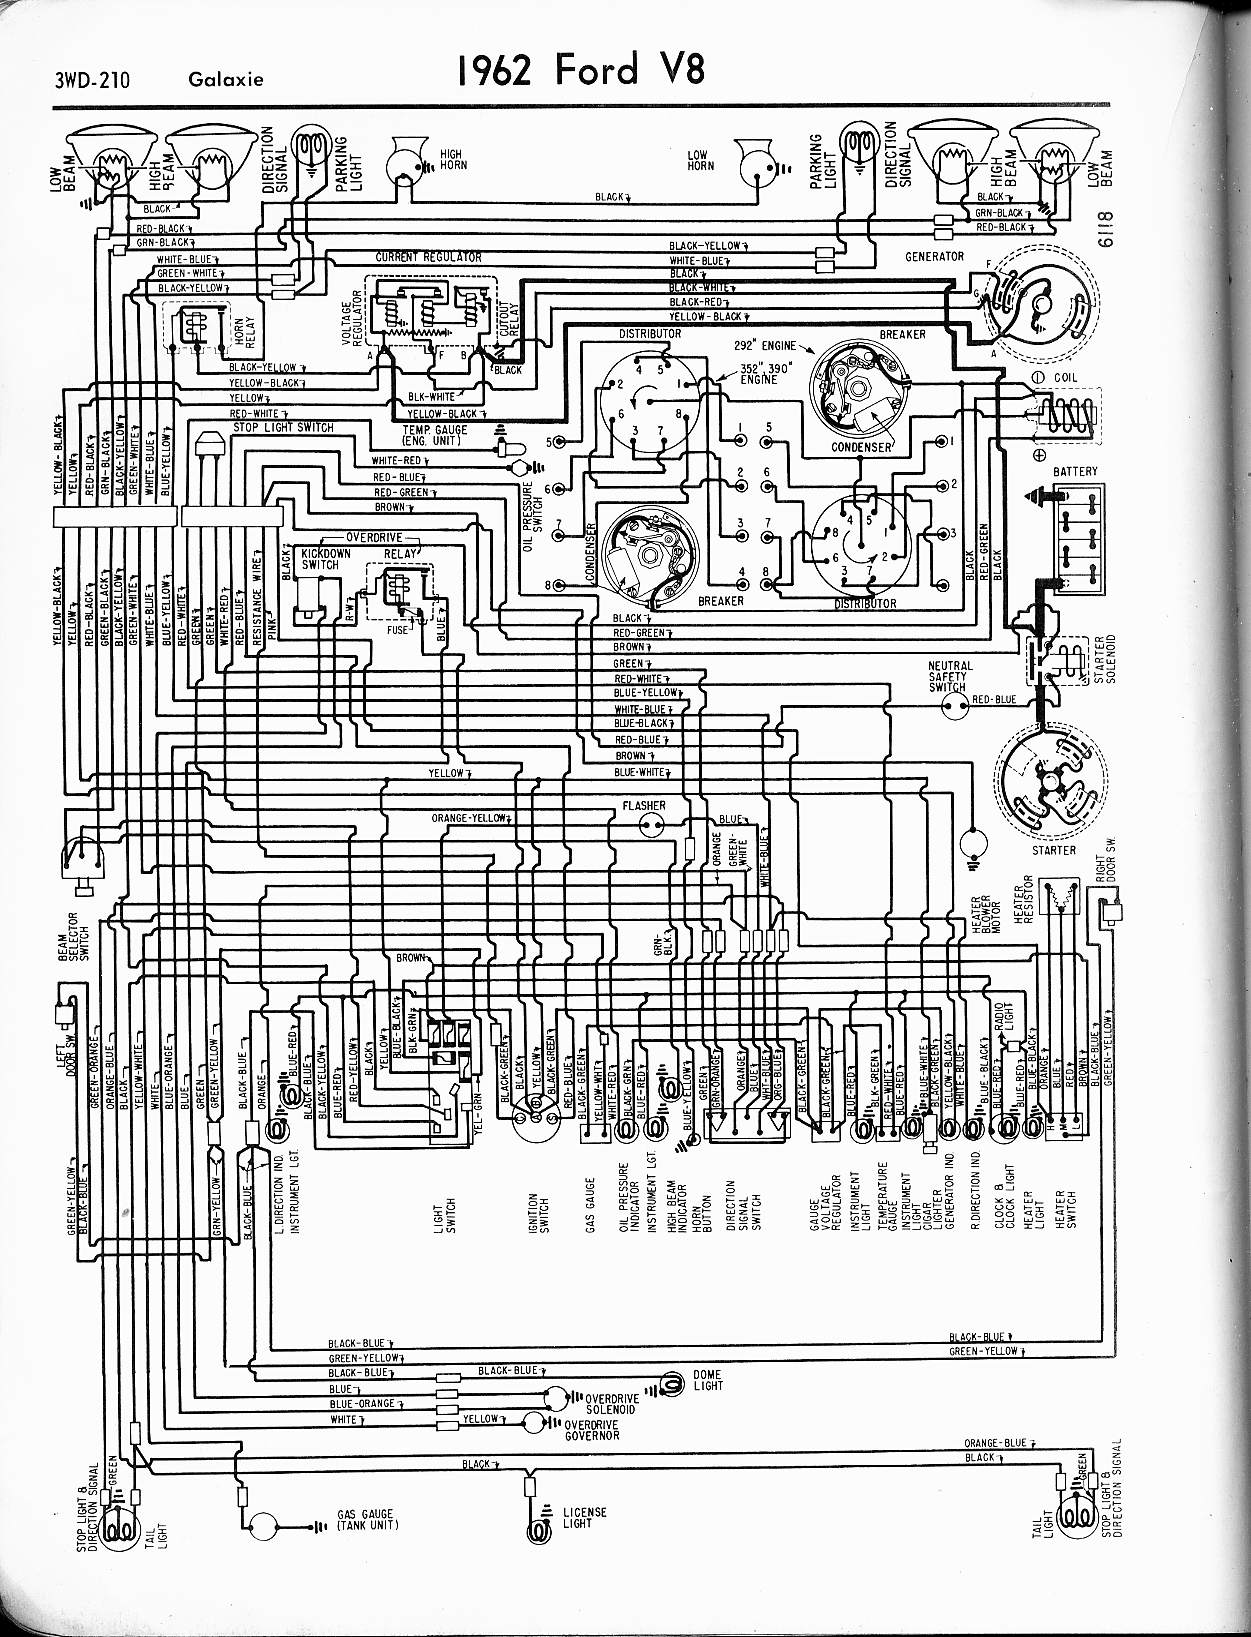 MWire5765 210 57 65 ford wiring diagrams wiring diagram 1968 ford mustang coupe at bayanpartner.co